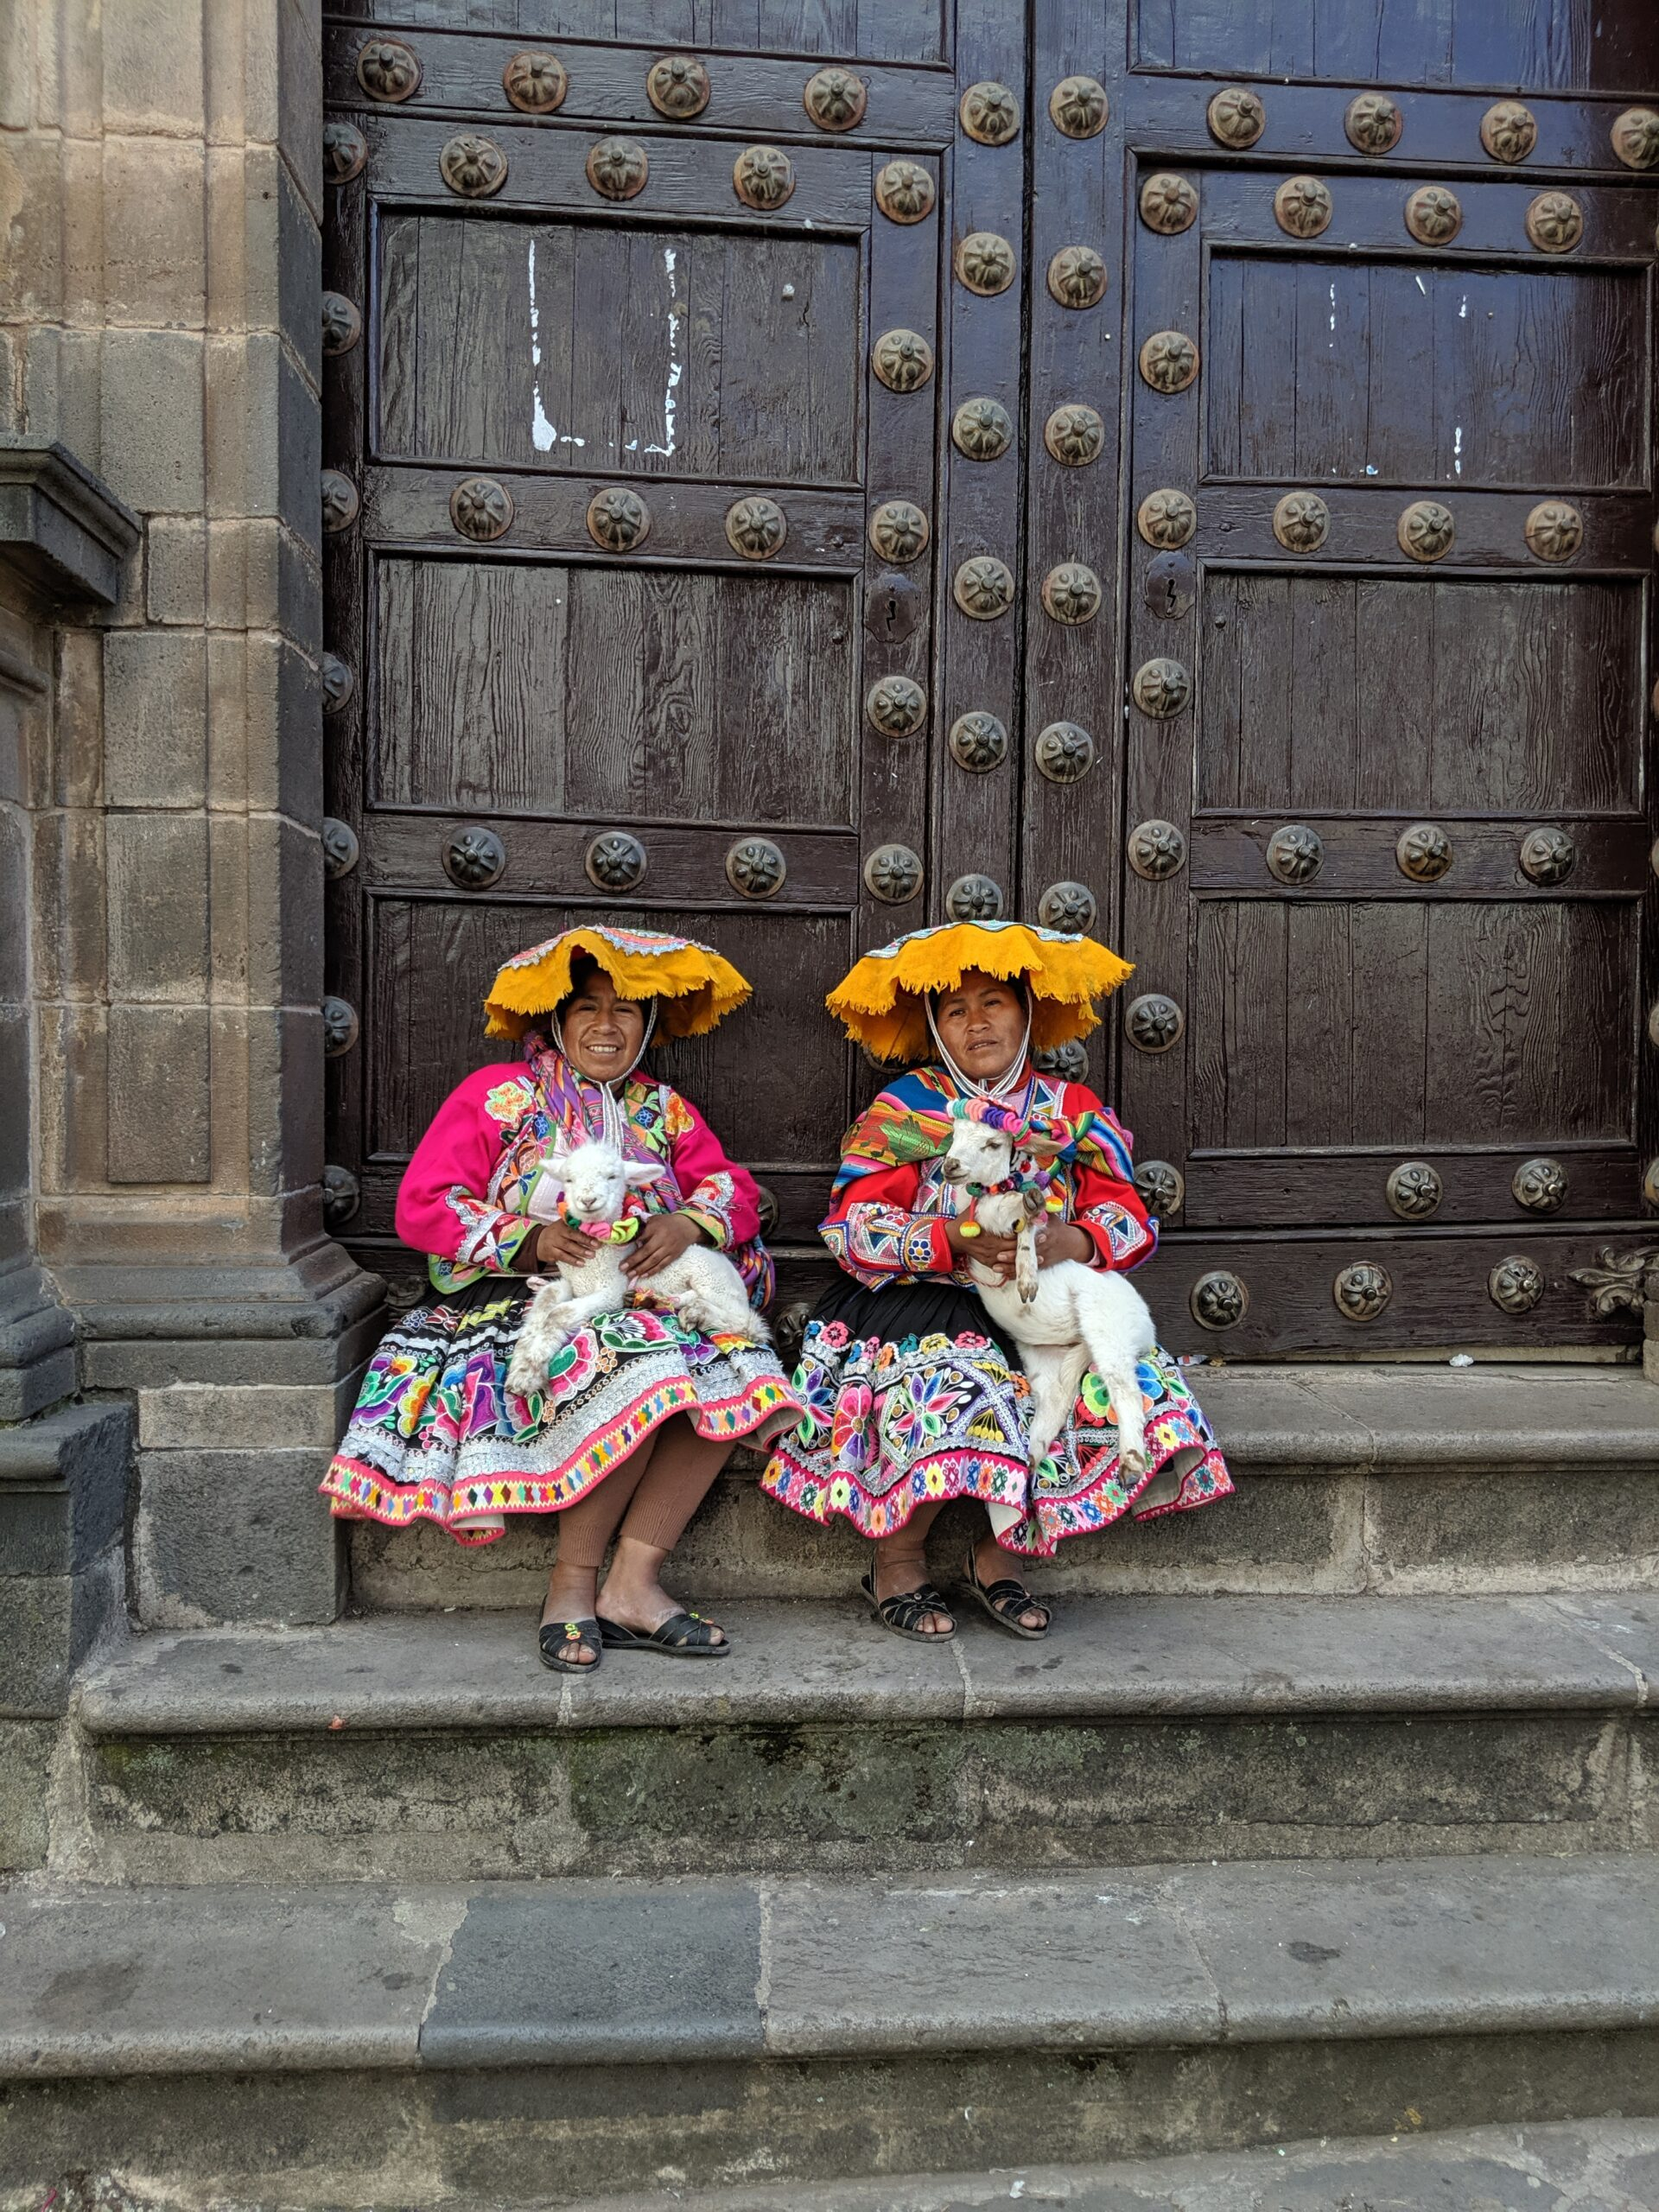 Two women pose in traditional peruvian clothing